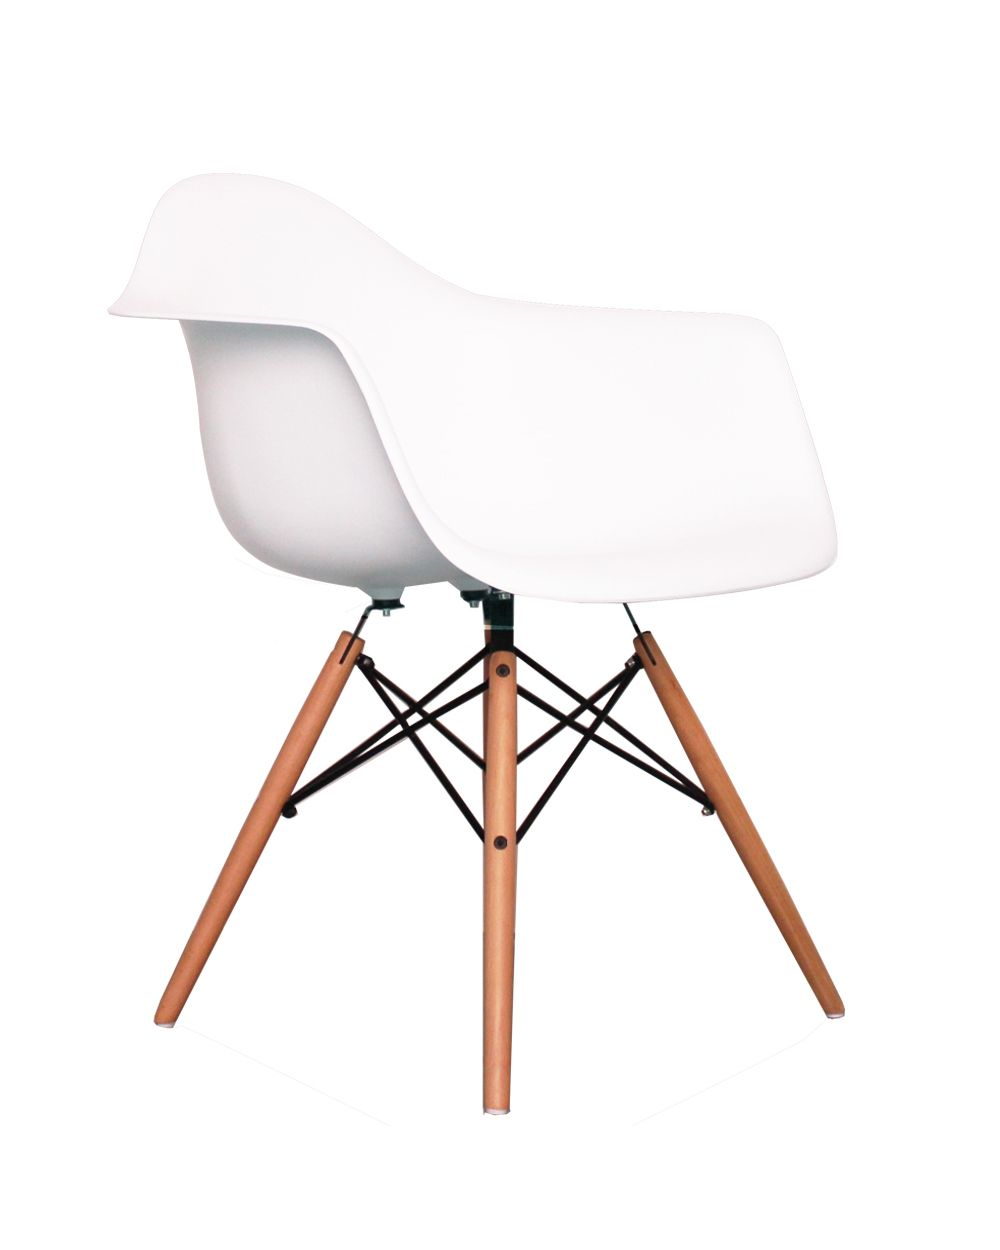 Chaise DAW | Chaises | Pinterest | Eames chairs, Charles eames and Room